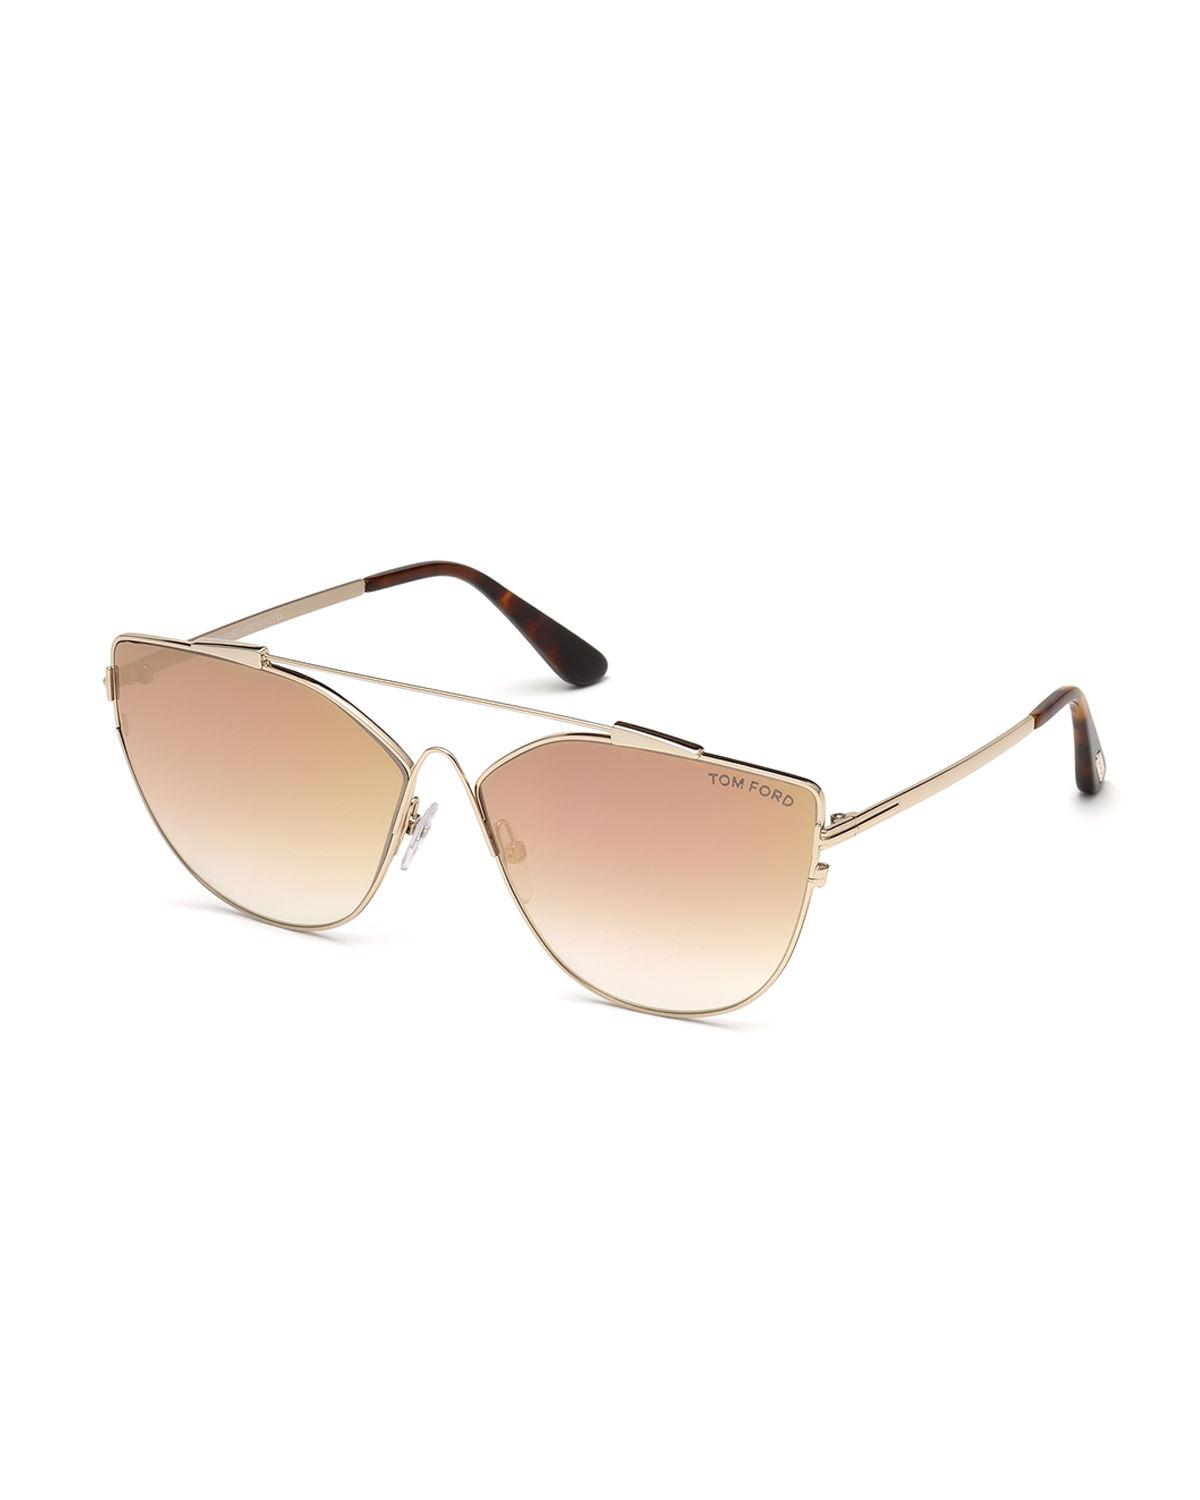 bf53caf7f9ed Tom Ford Jacquelyn 64Mm Cat Eye Sunglasses - Gold/ Light Brown Mirror In  Nocolor